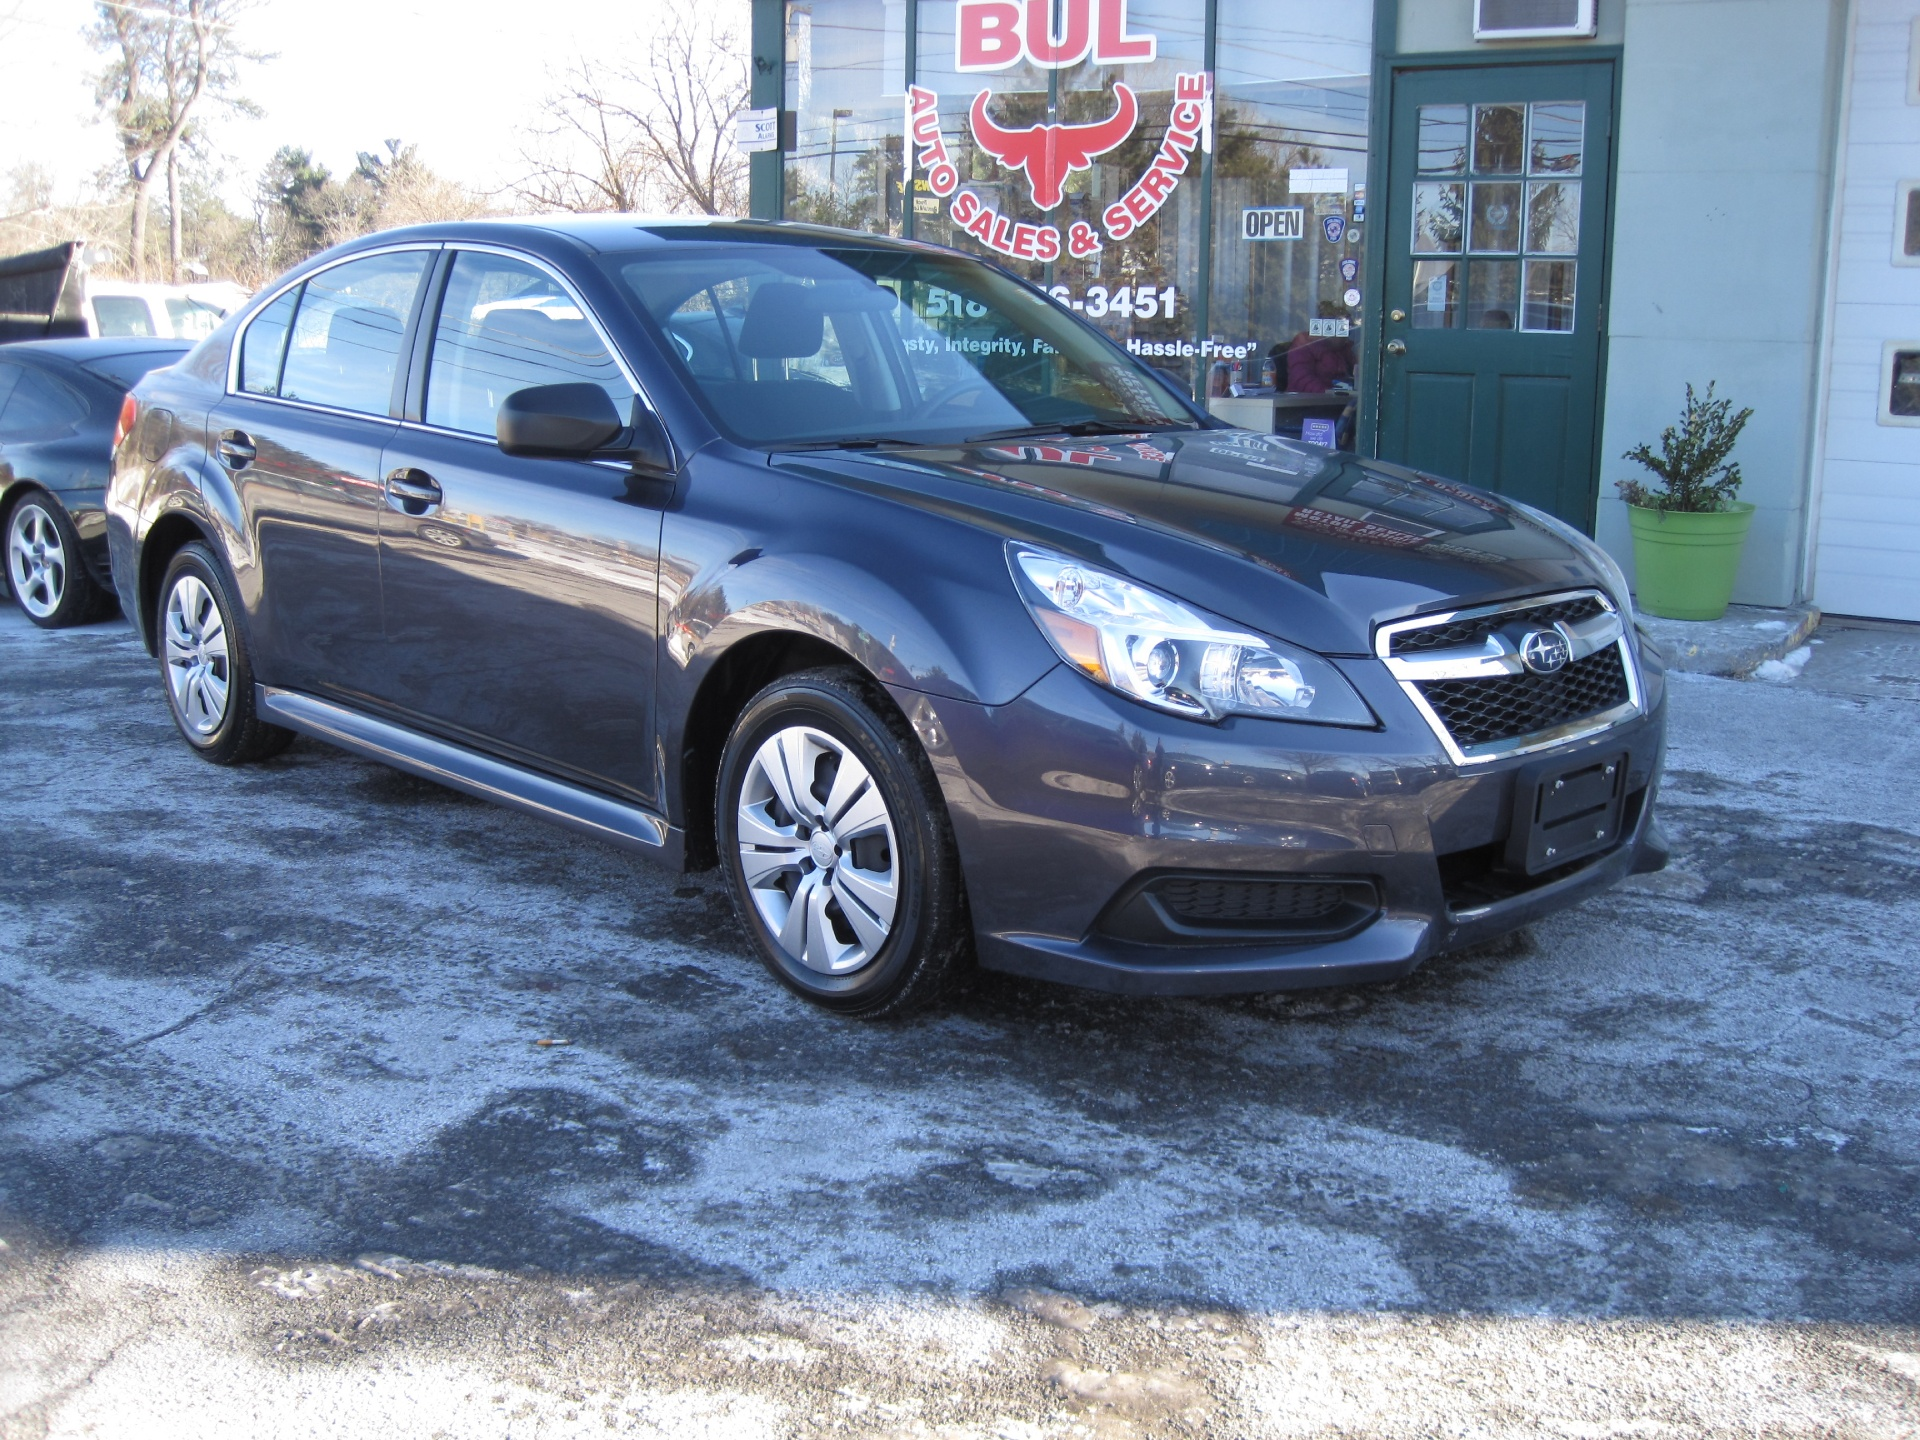 2013 subaru legacy automatic 1 owner very clean stock 15009 for sale near albany ny ny. Black Bedroom Furniture Sets. Home Design Ideas